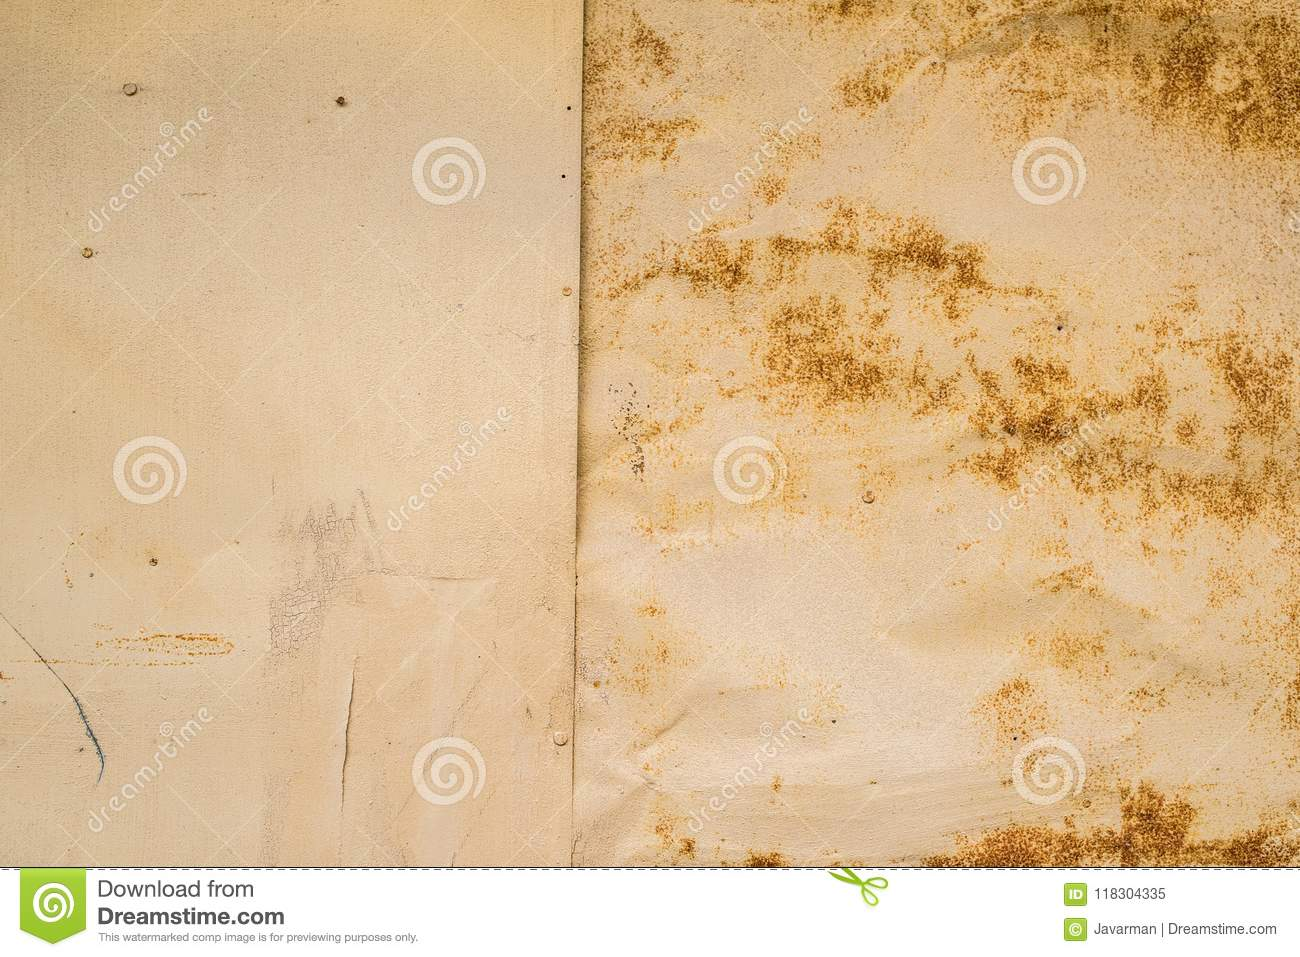 Download Rusty Grunge Texture Nice High Resolution Background Stock Illustration